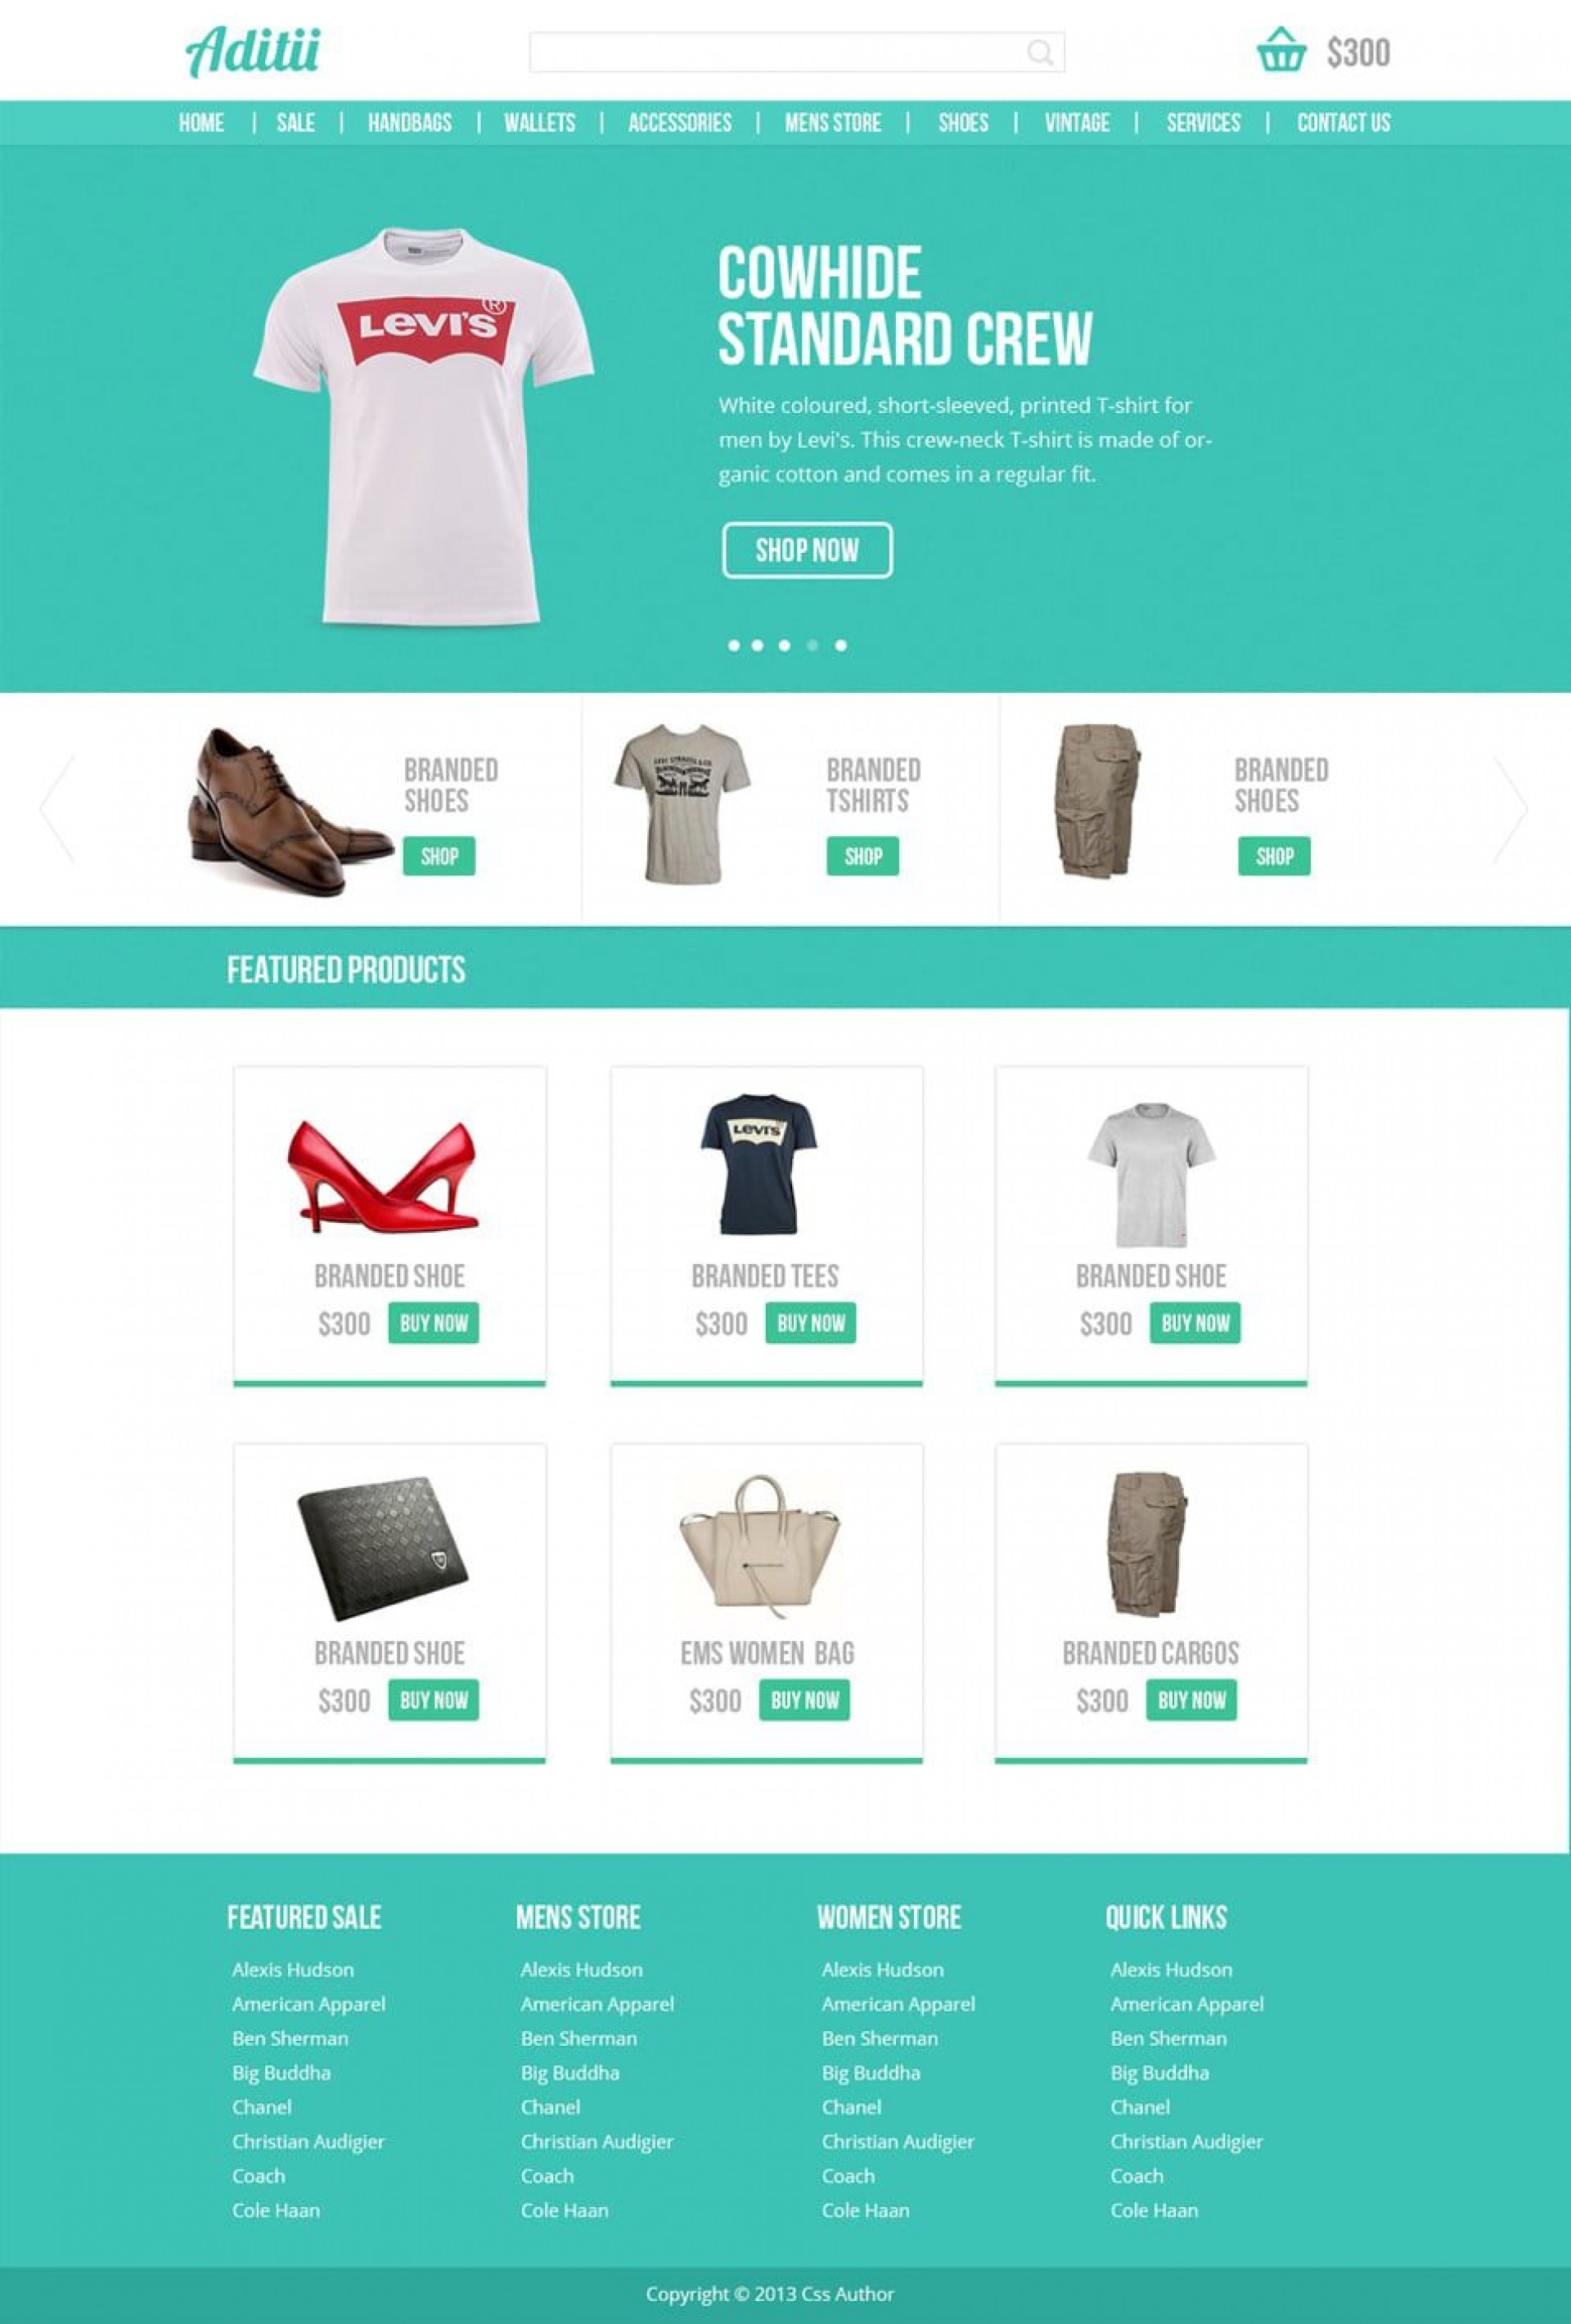 000 Impressive Free Ecommerce Website Template Download Inspiration  Shopping Cart Bootstrap 31920